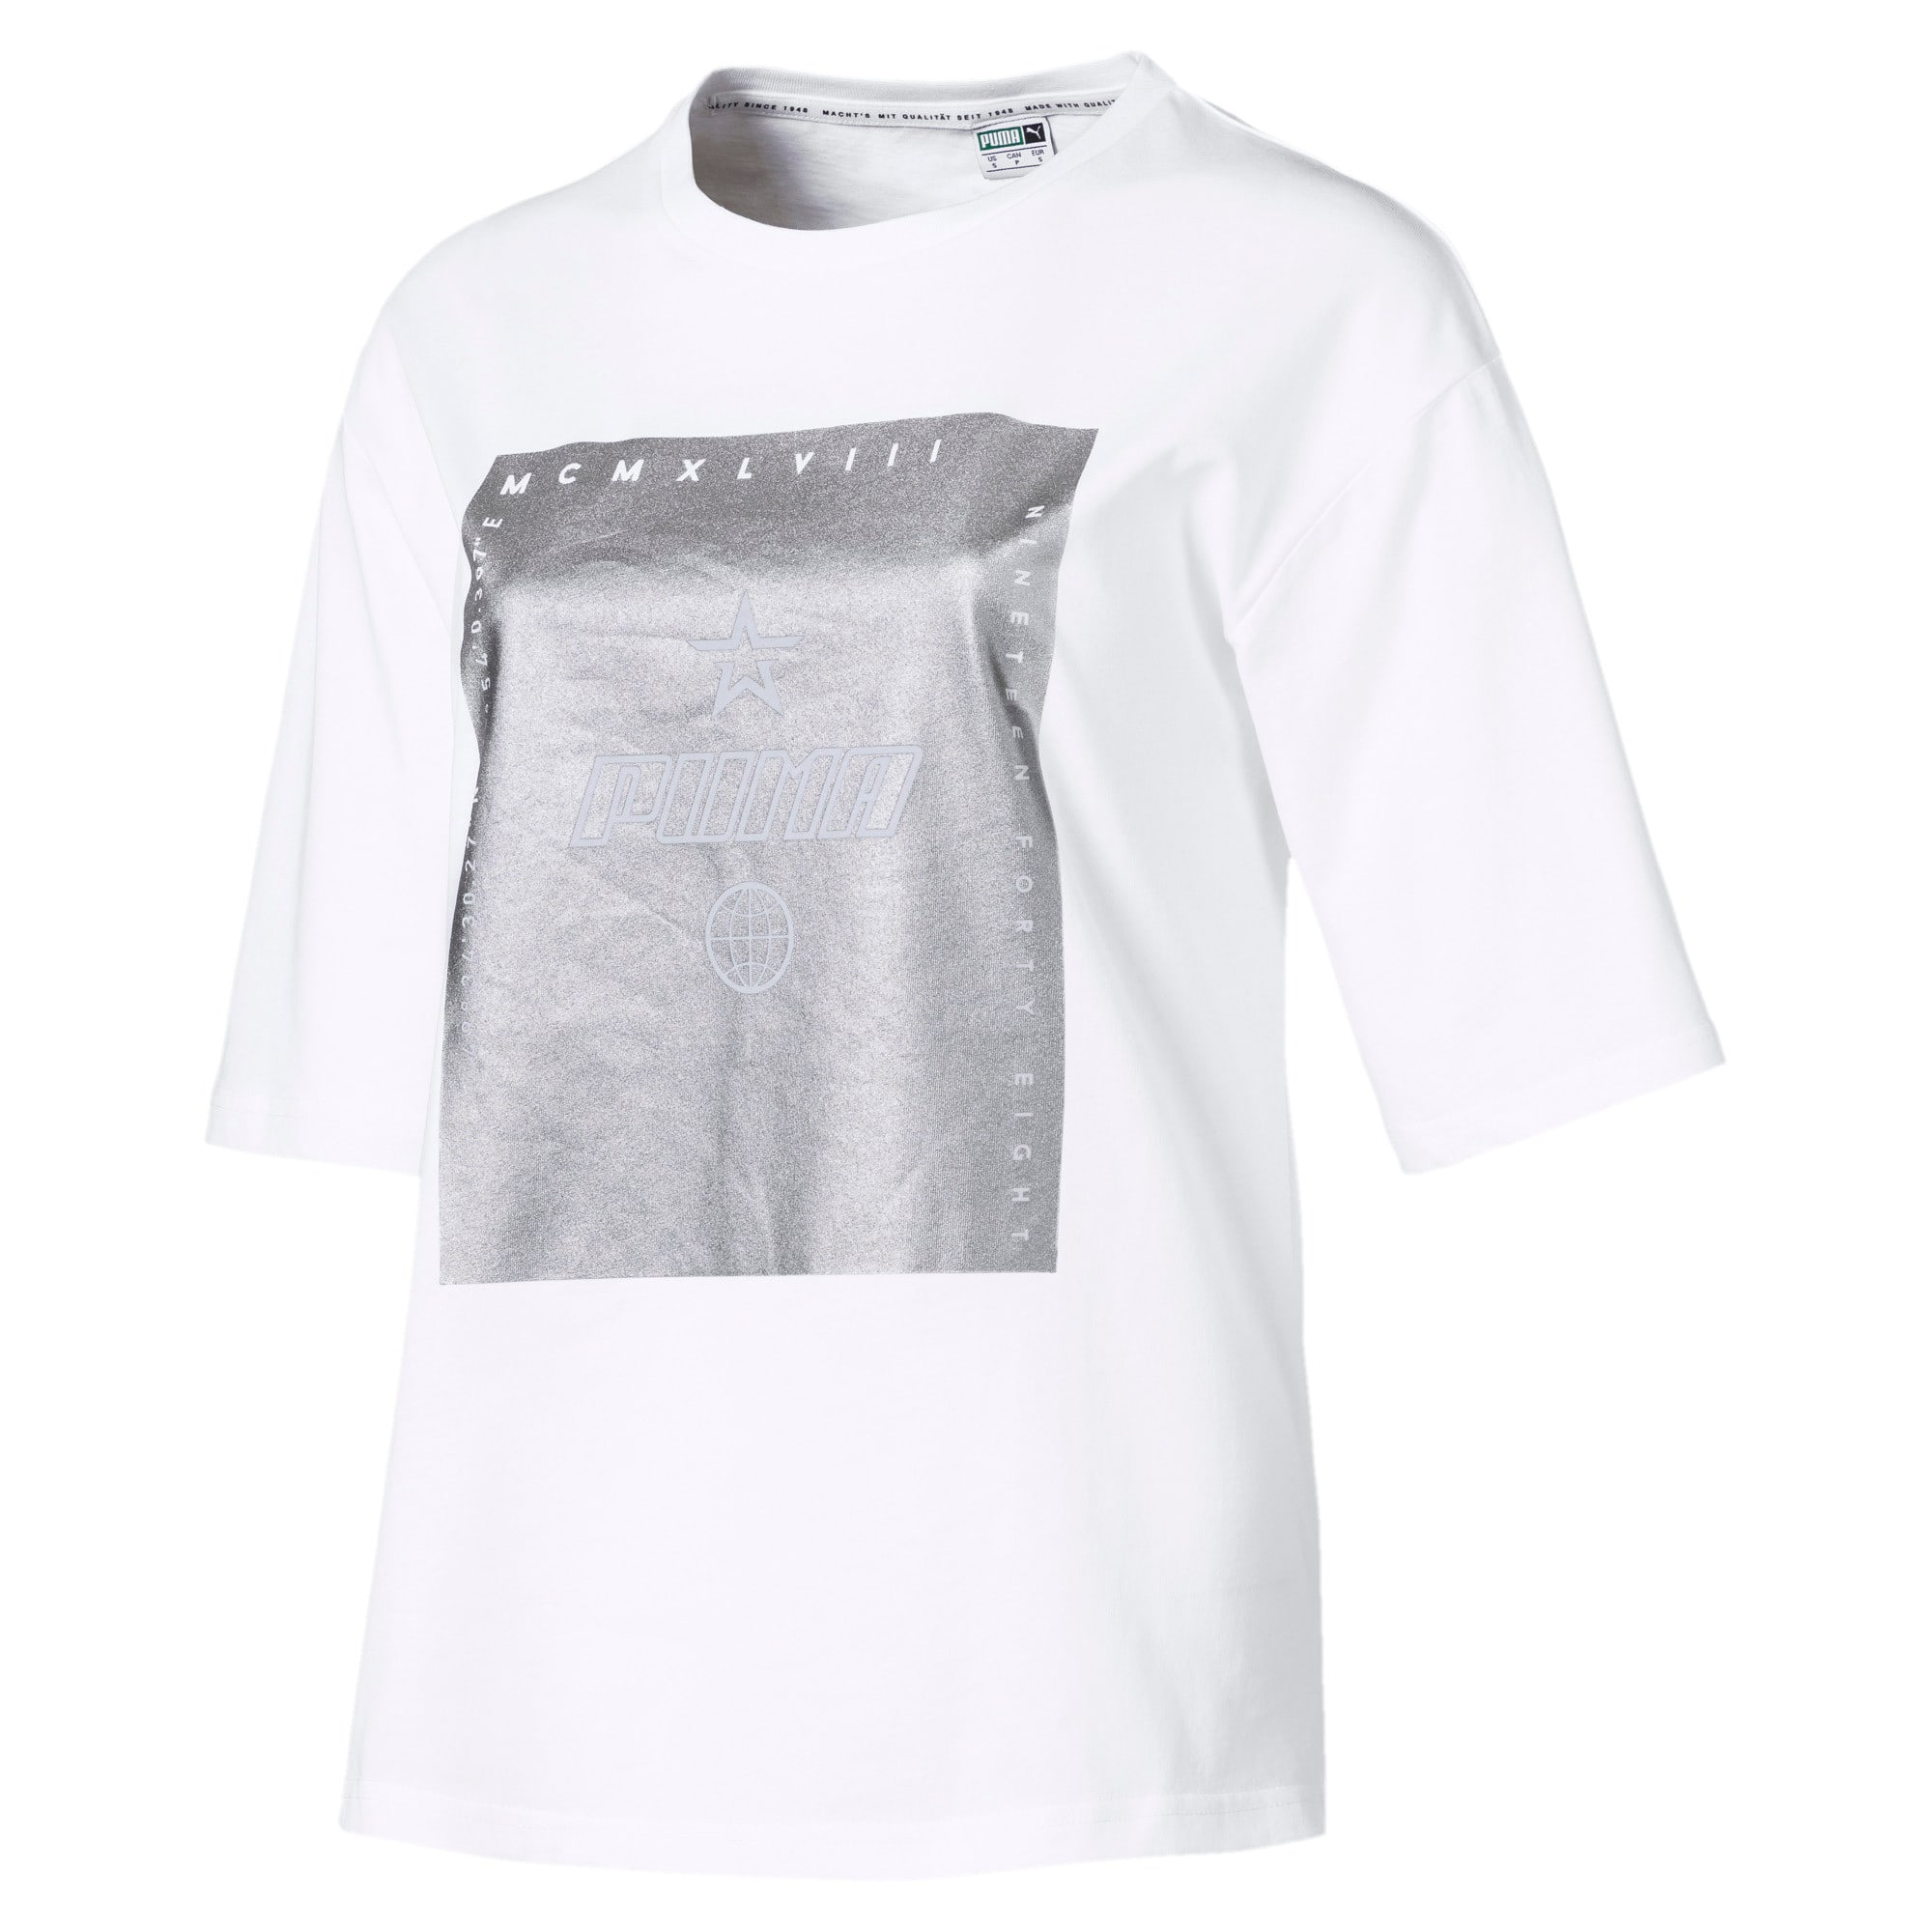 Thumbnail 1 of Trailblazer Women's Tee, Puma White, medium